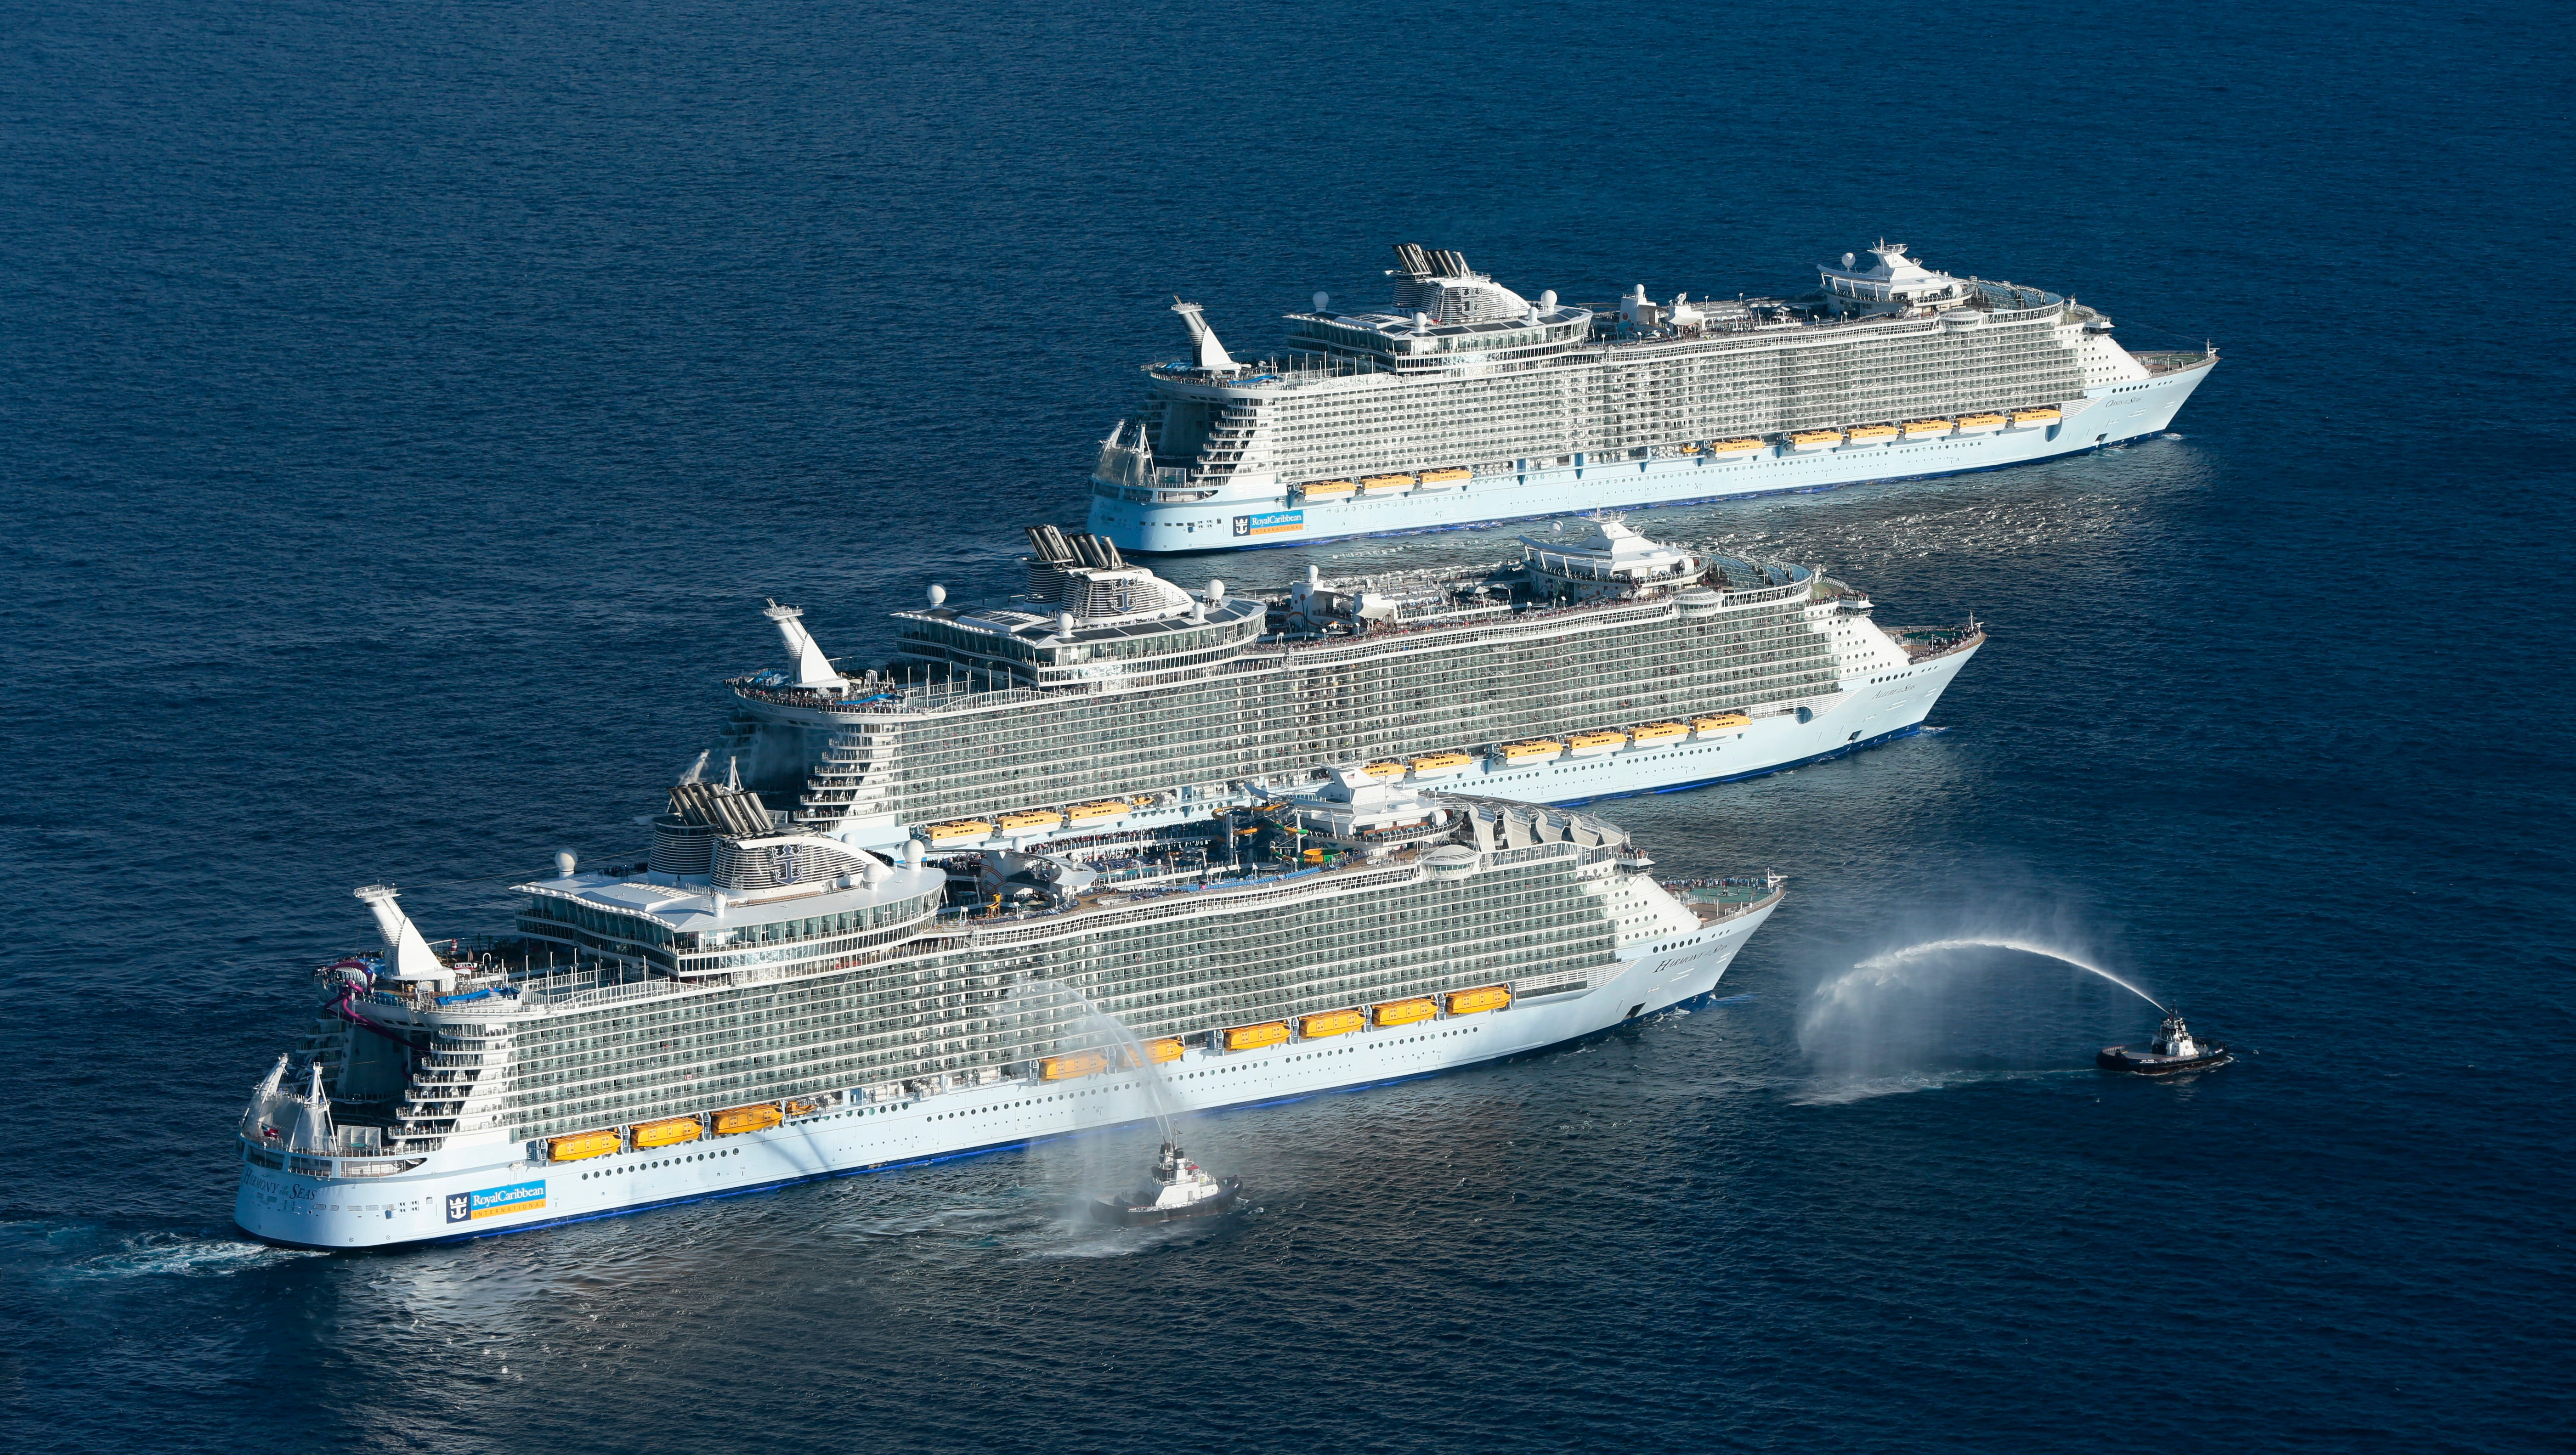 Royal Caribbean Oasis Class Cruise Ships On The Move For 2019,Lebanon High School New Hampshire